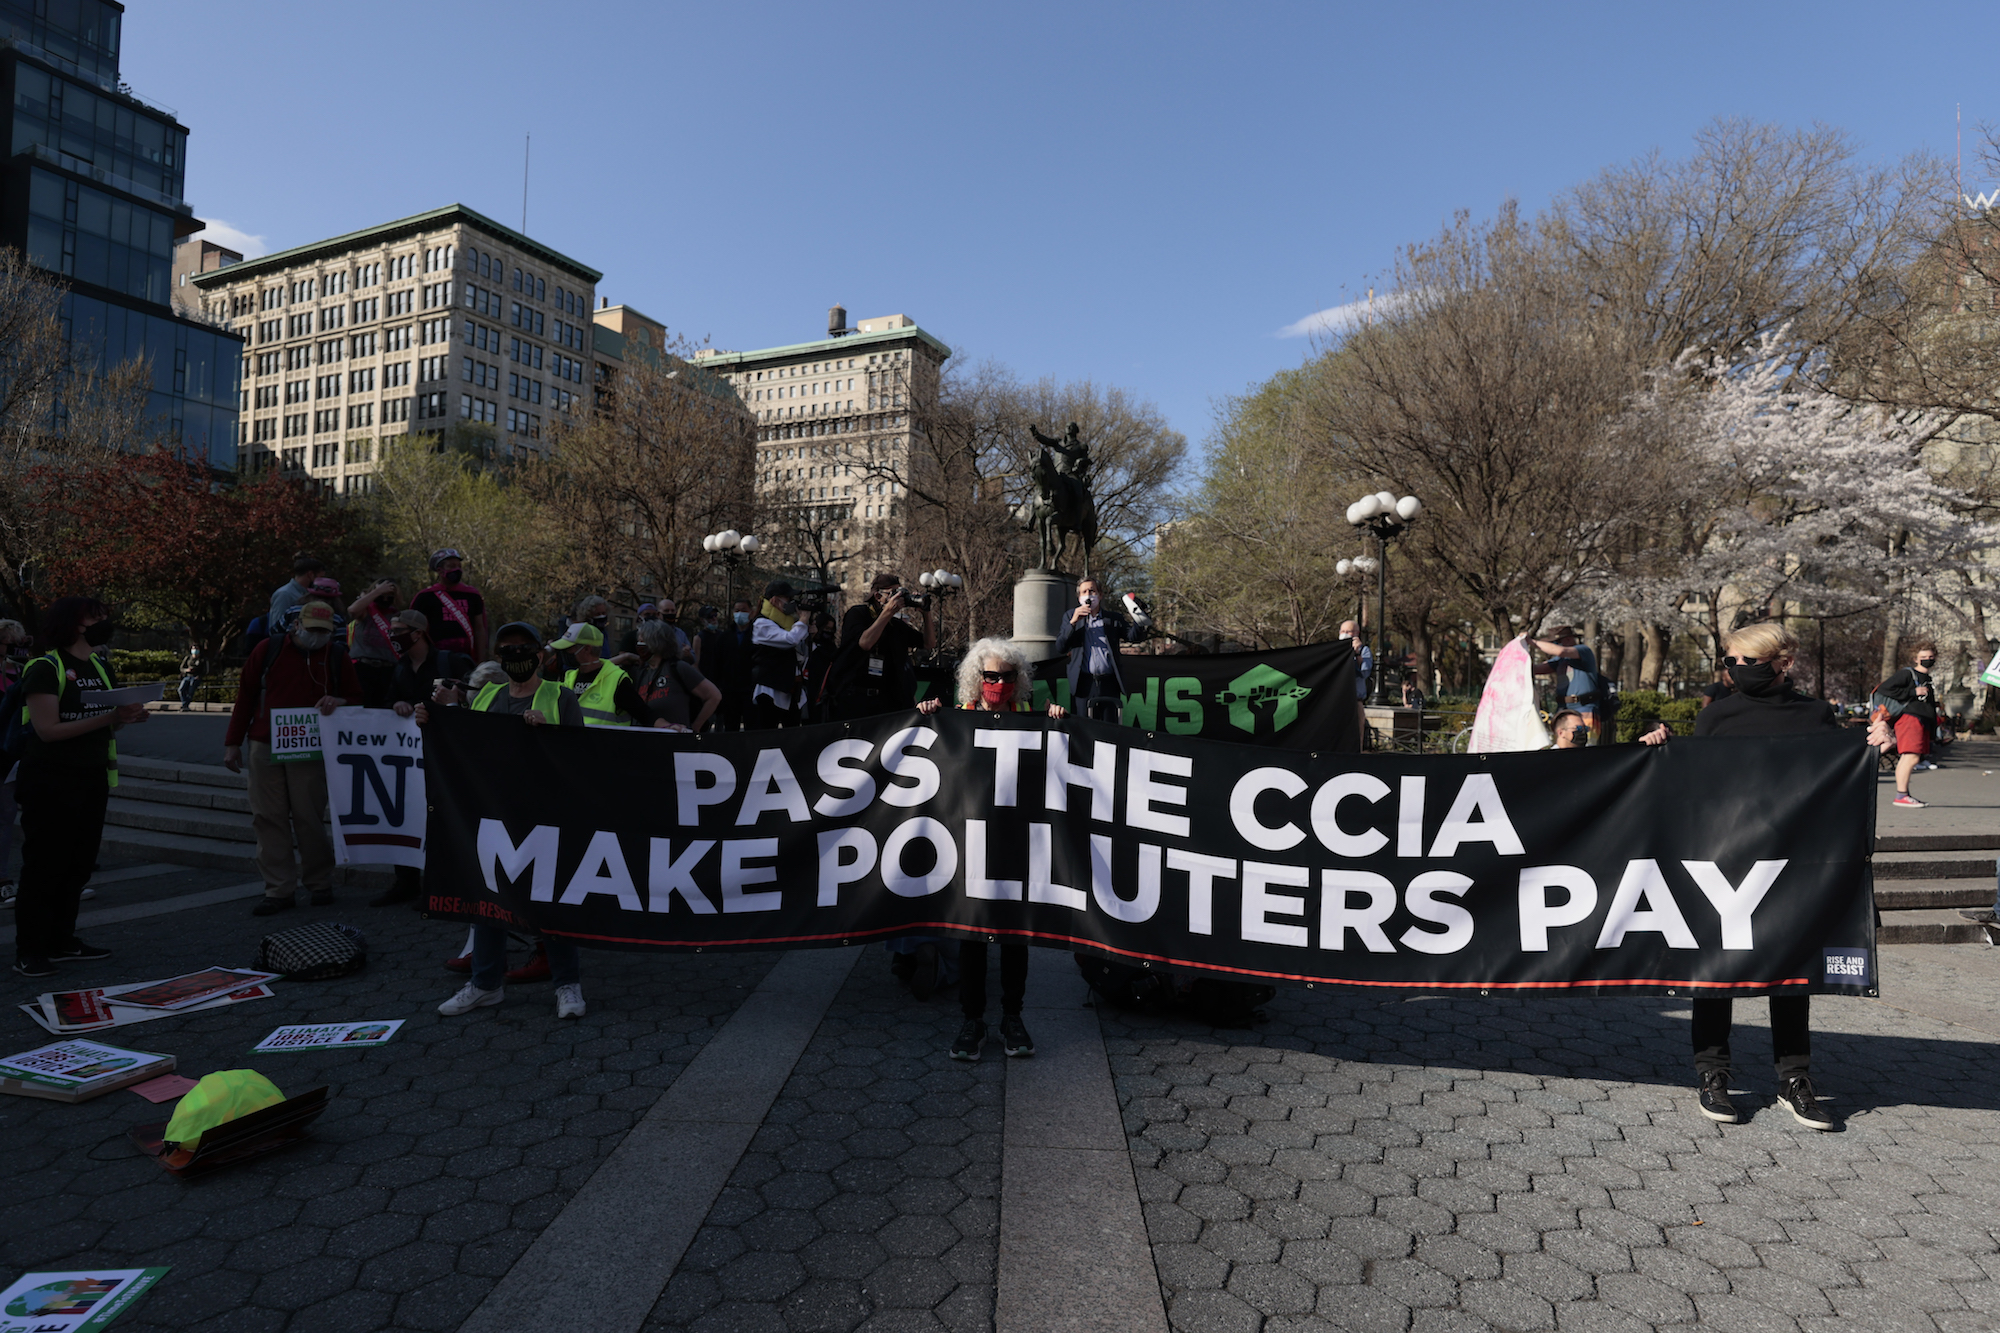 """a group of activists carry a large banner with white letters reading """"PASS THE CCIA MAKE POLLUTERS PAY"""""""